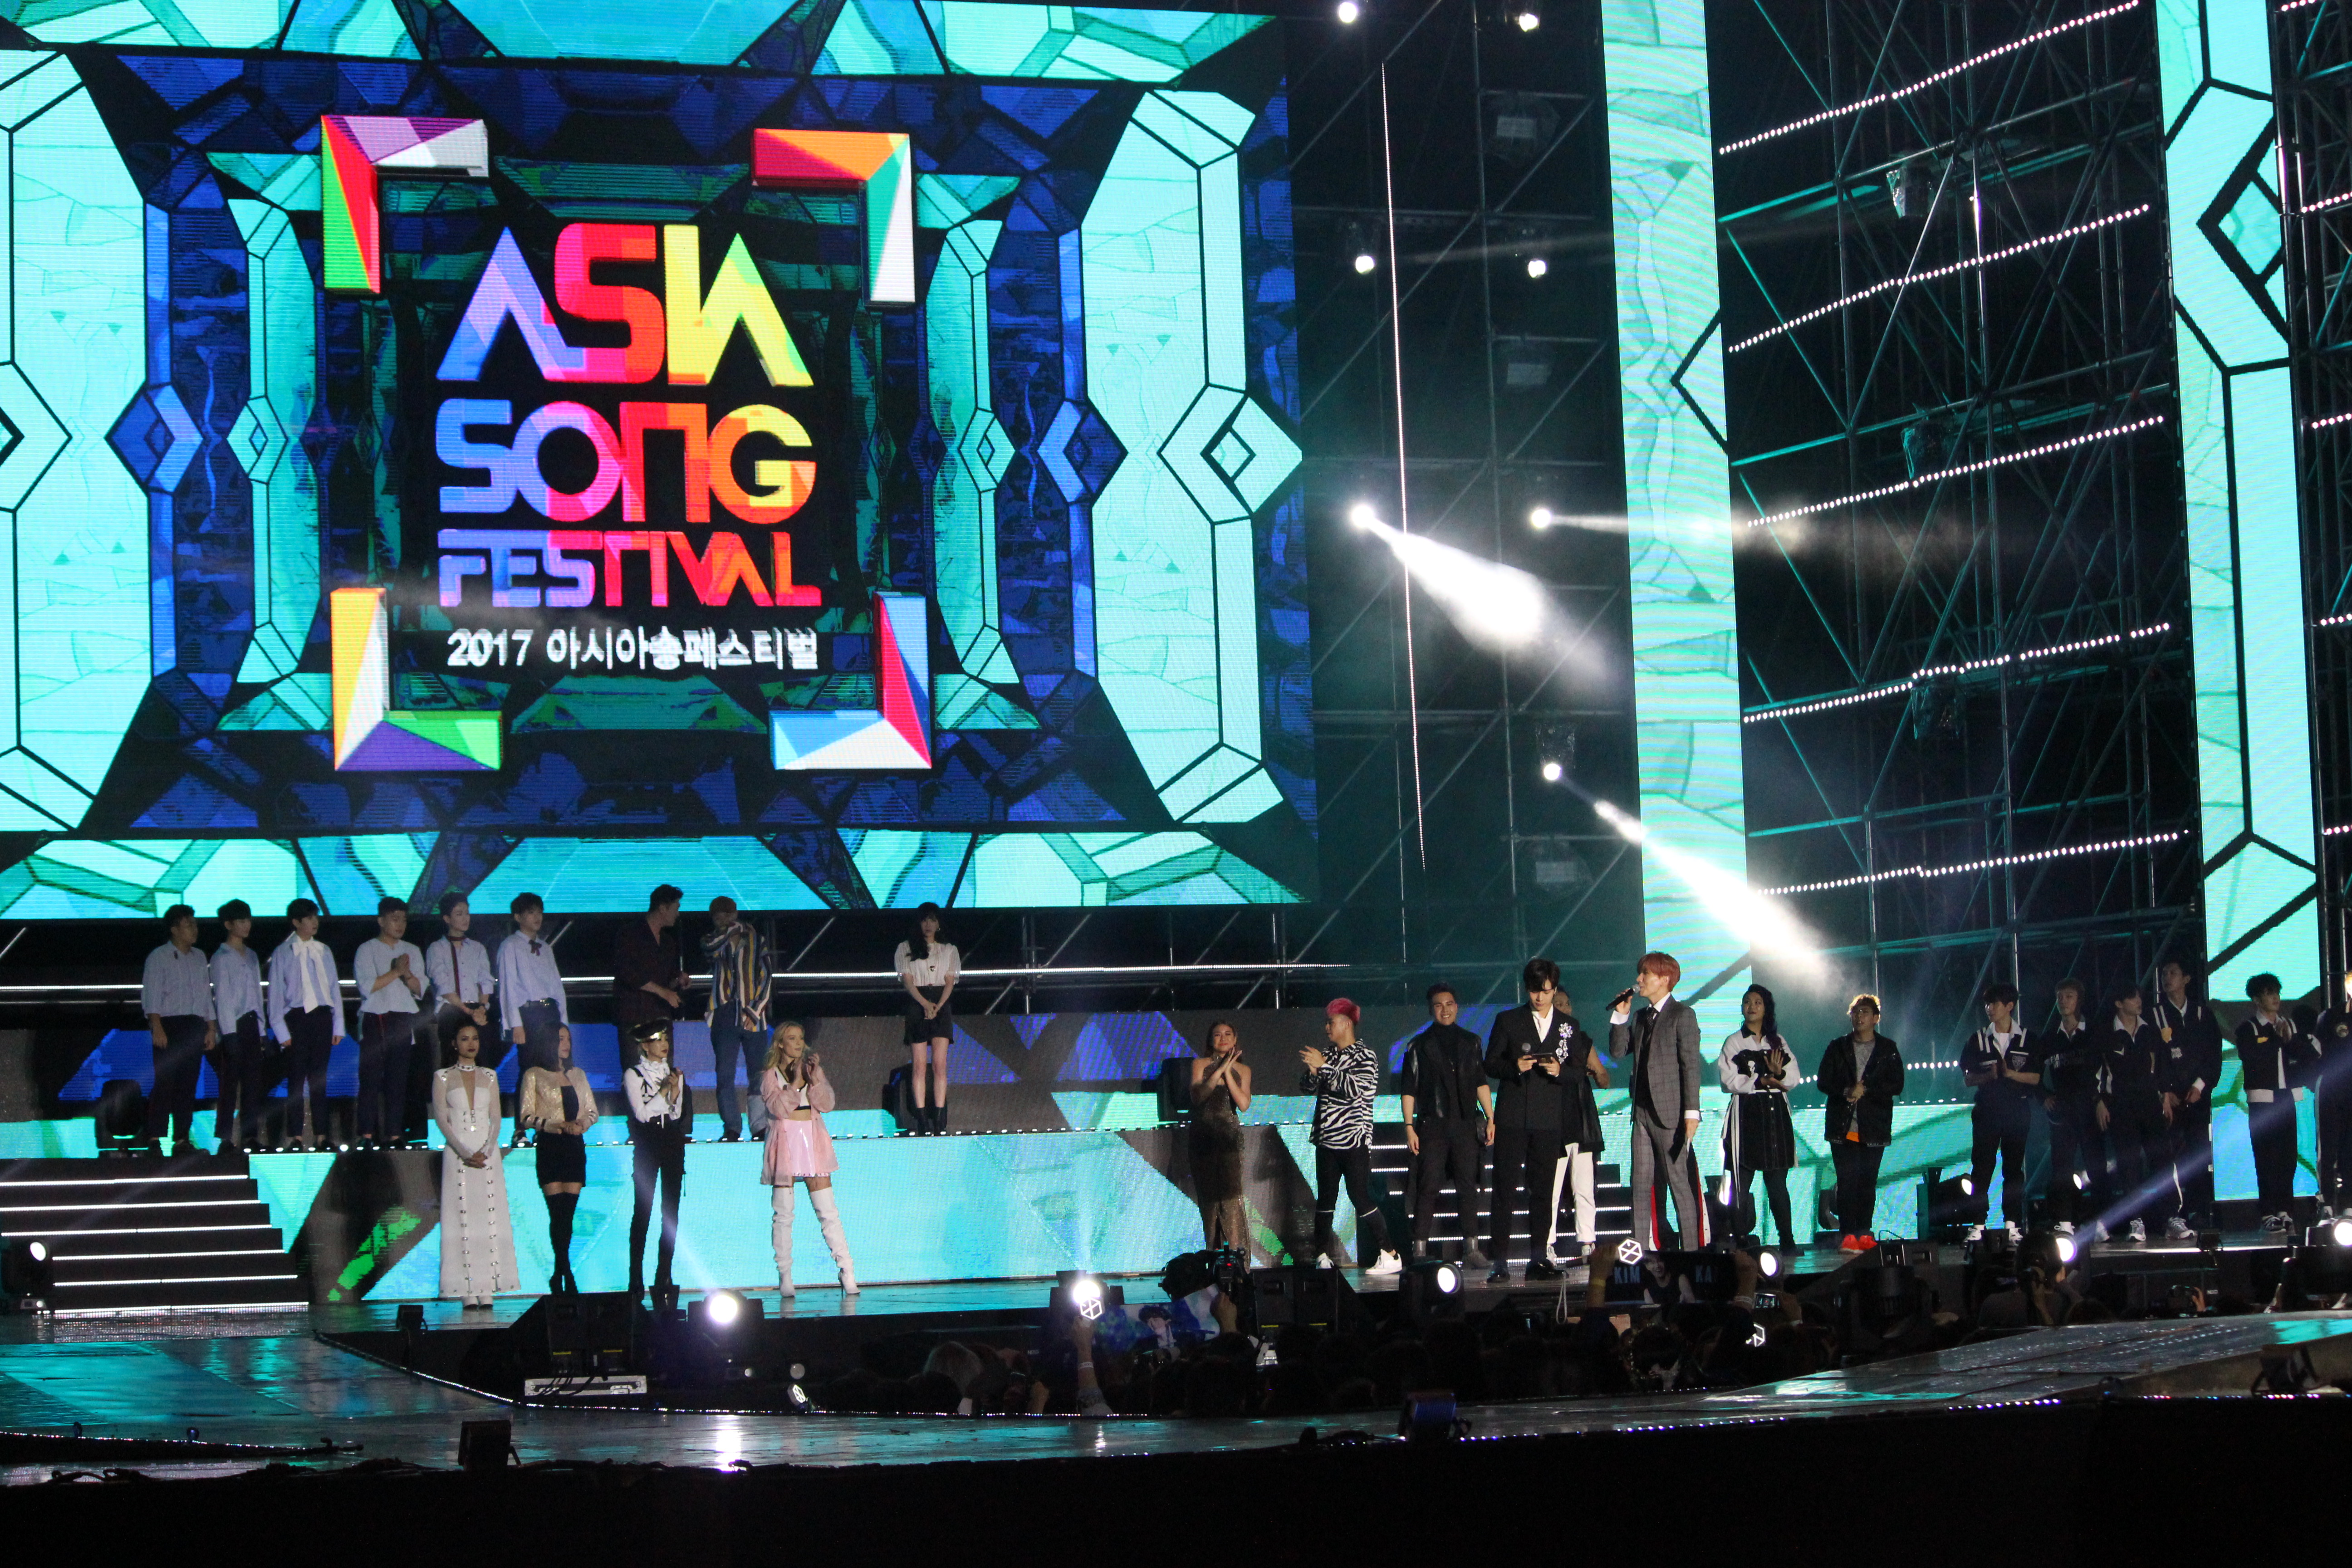 Photo Gallery: Asia Song Festival – Asiad Main Stadium, Busan (24.09.17)